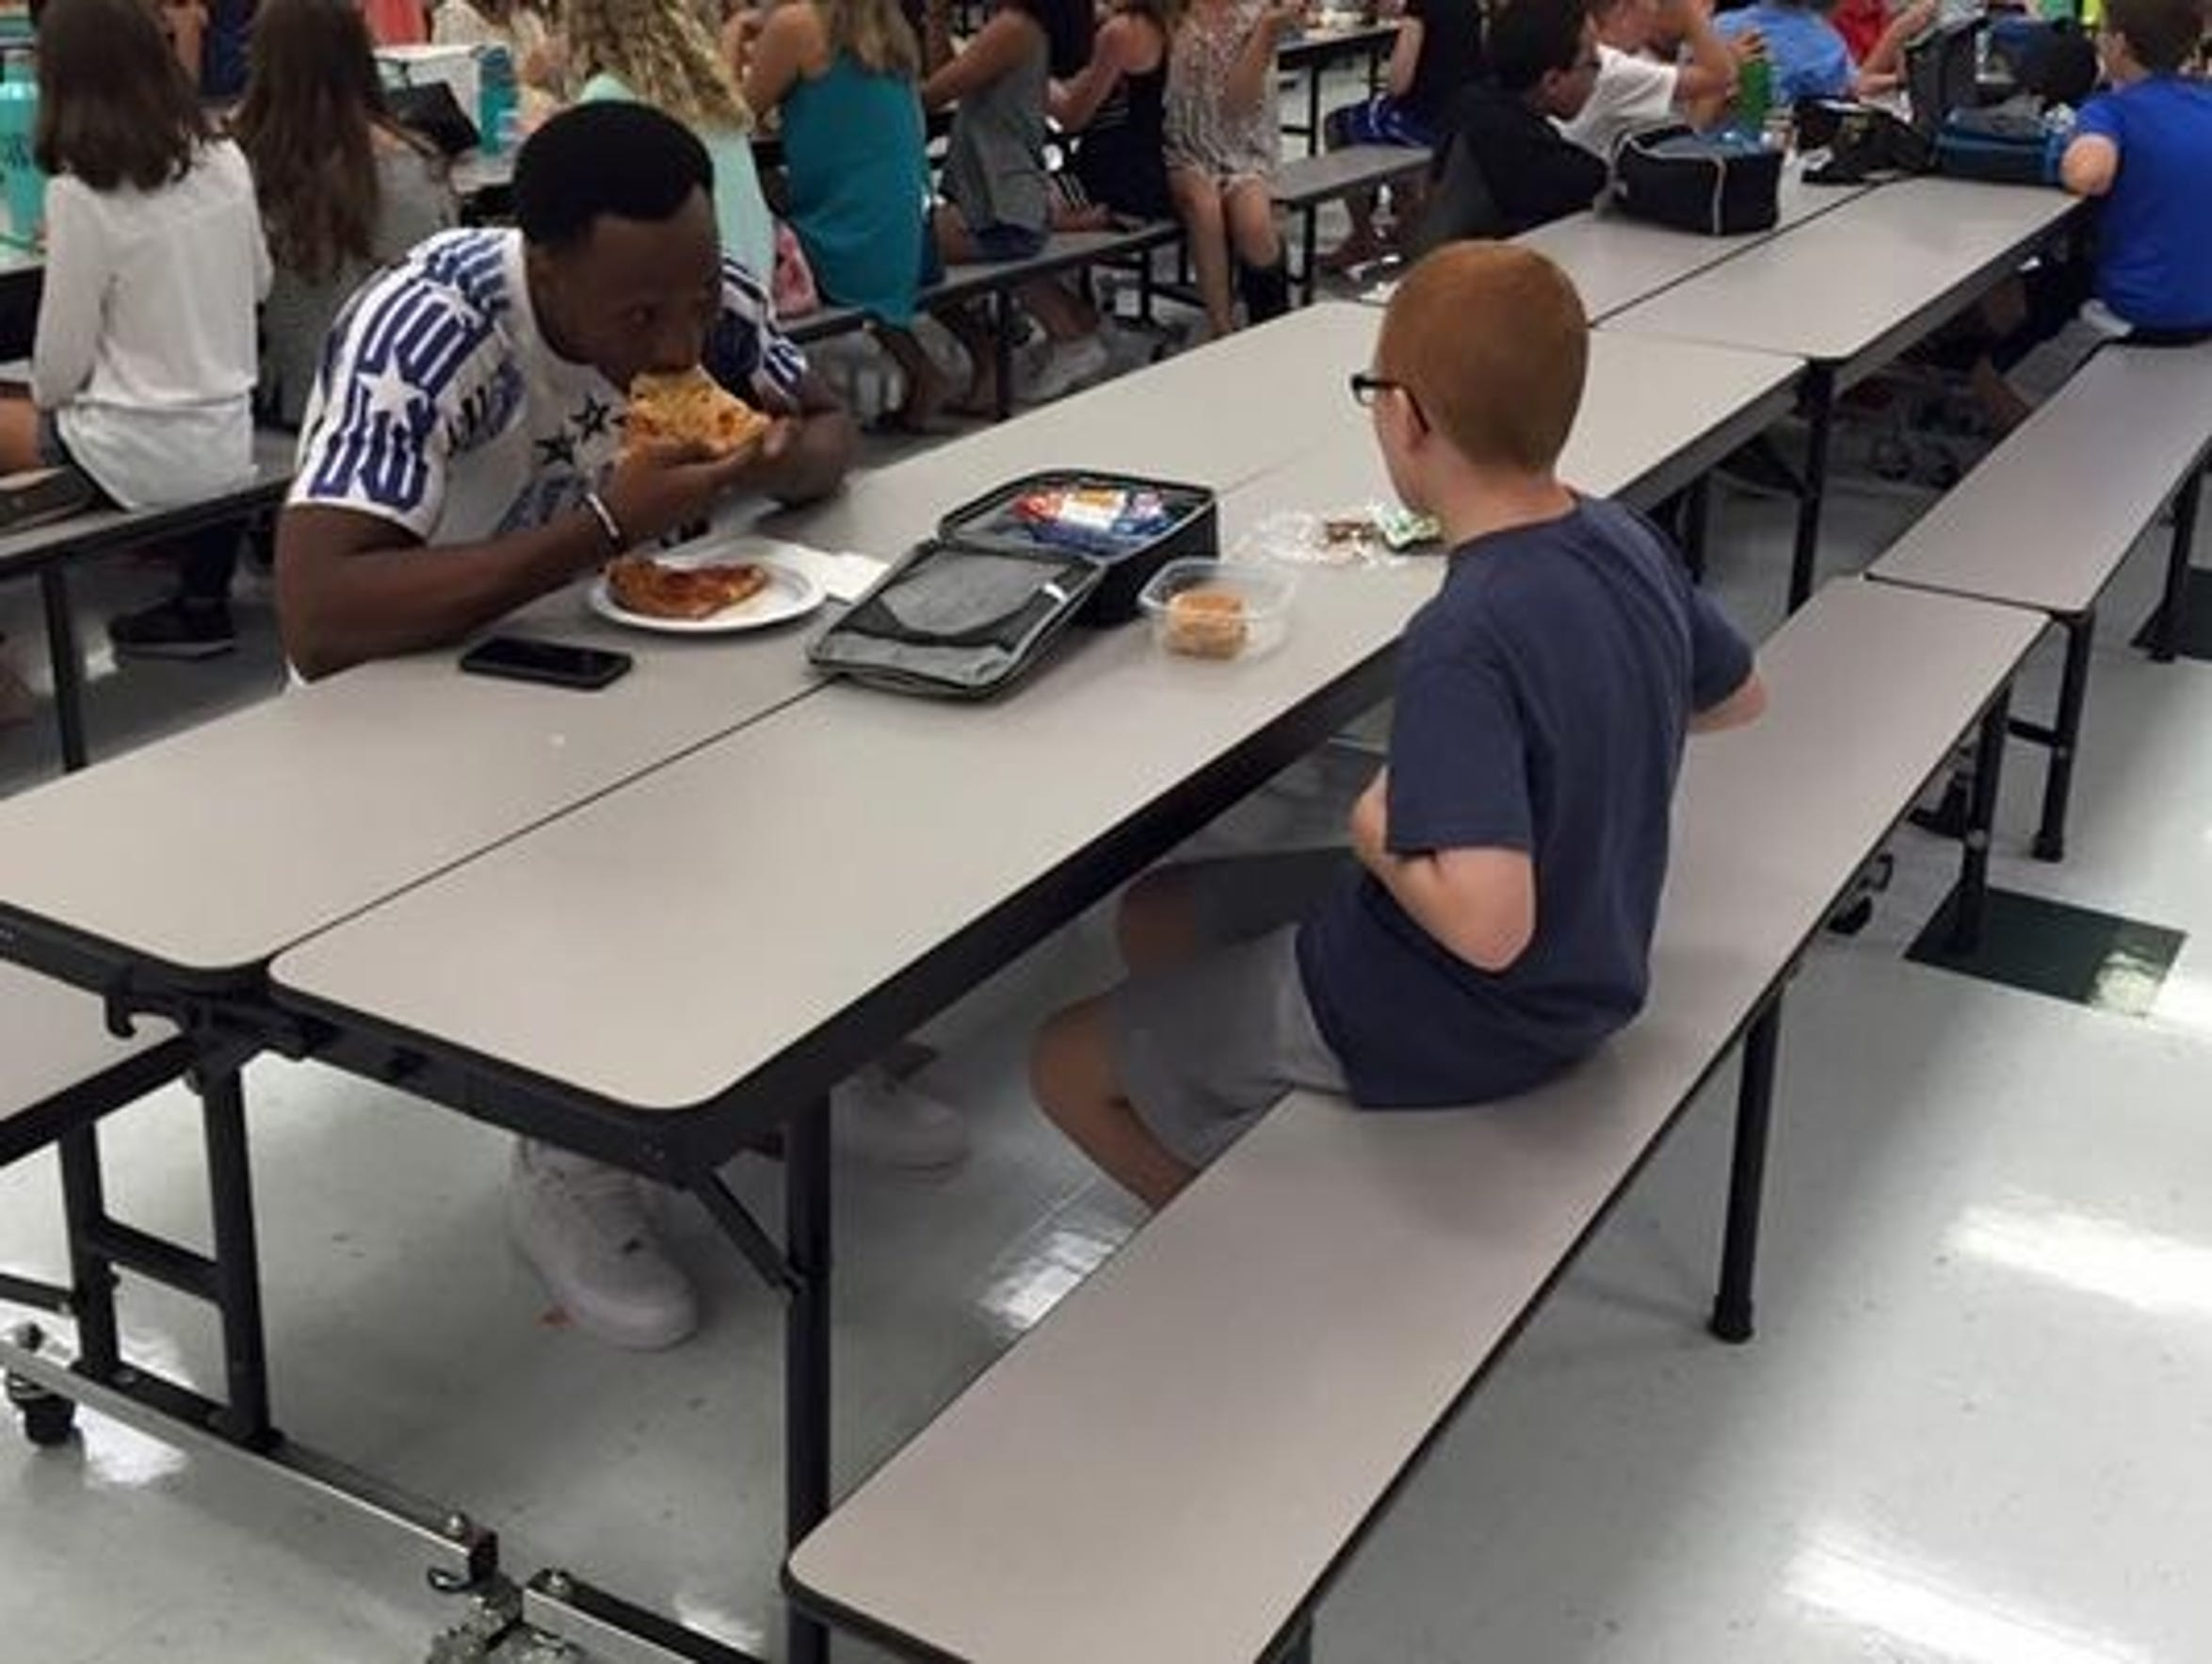 FSU receiver Travis Rudolph bites into a slice of pizza